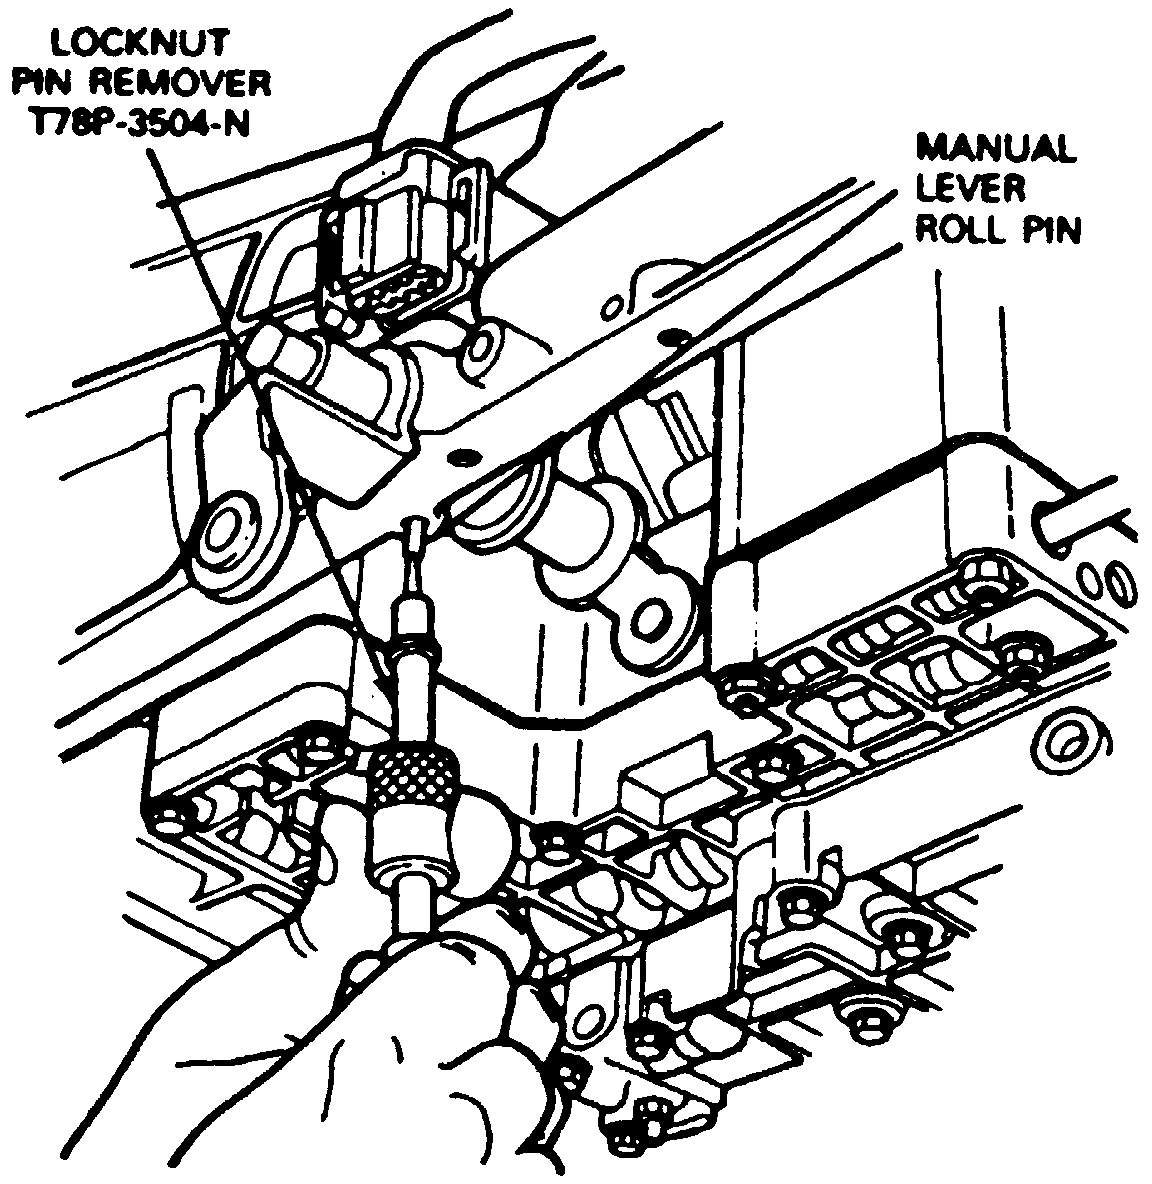 Transmission Swap Gear Selector Lever Not the Same Size